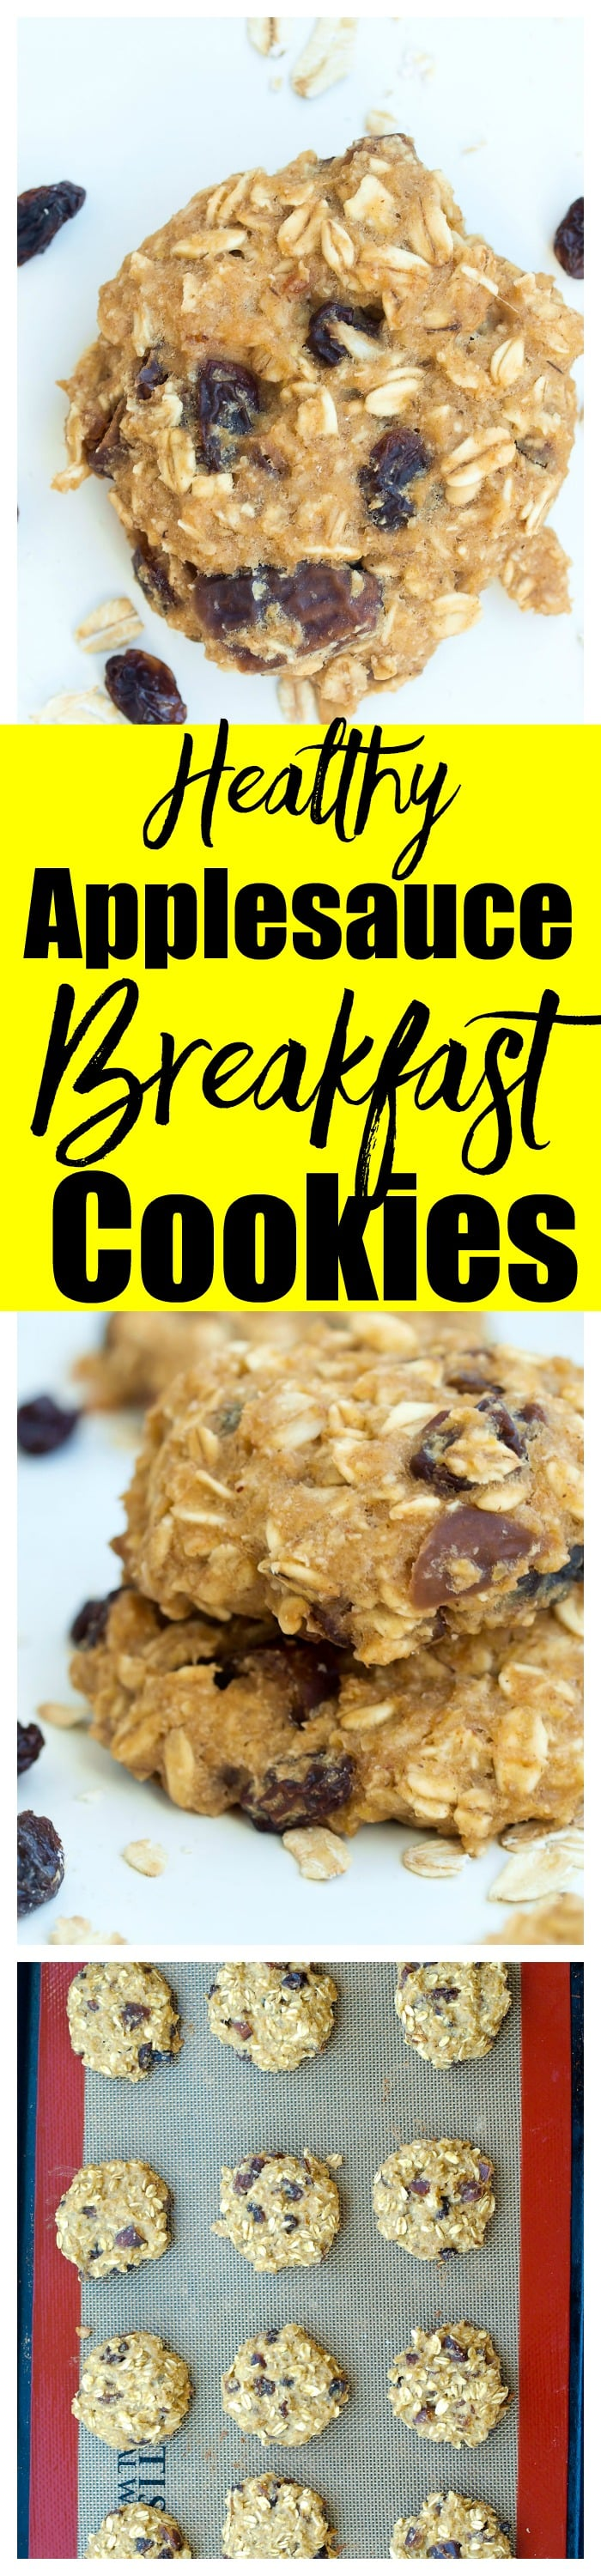 These healthy Applesauce Breakfast Cookies are a simple, one-bowl recipe and are gluten-free and vegan cookies. They are perfect for breakfast, a snack, or to satisfy your sweet tooth with NO added sugar!!